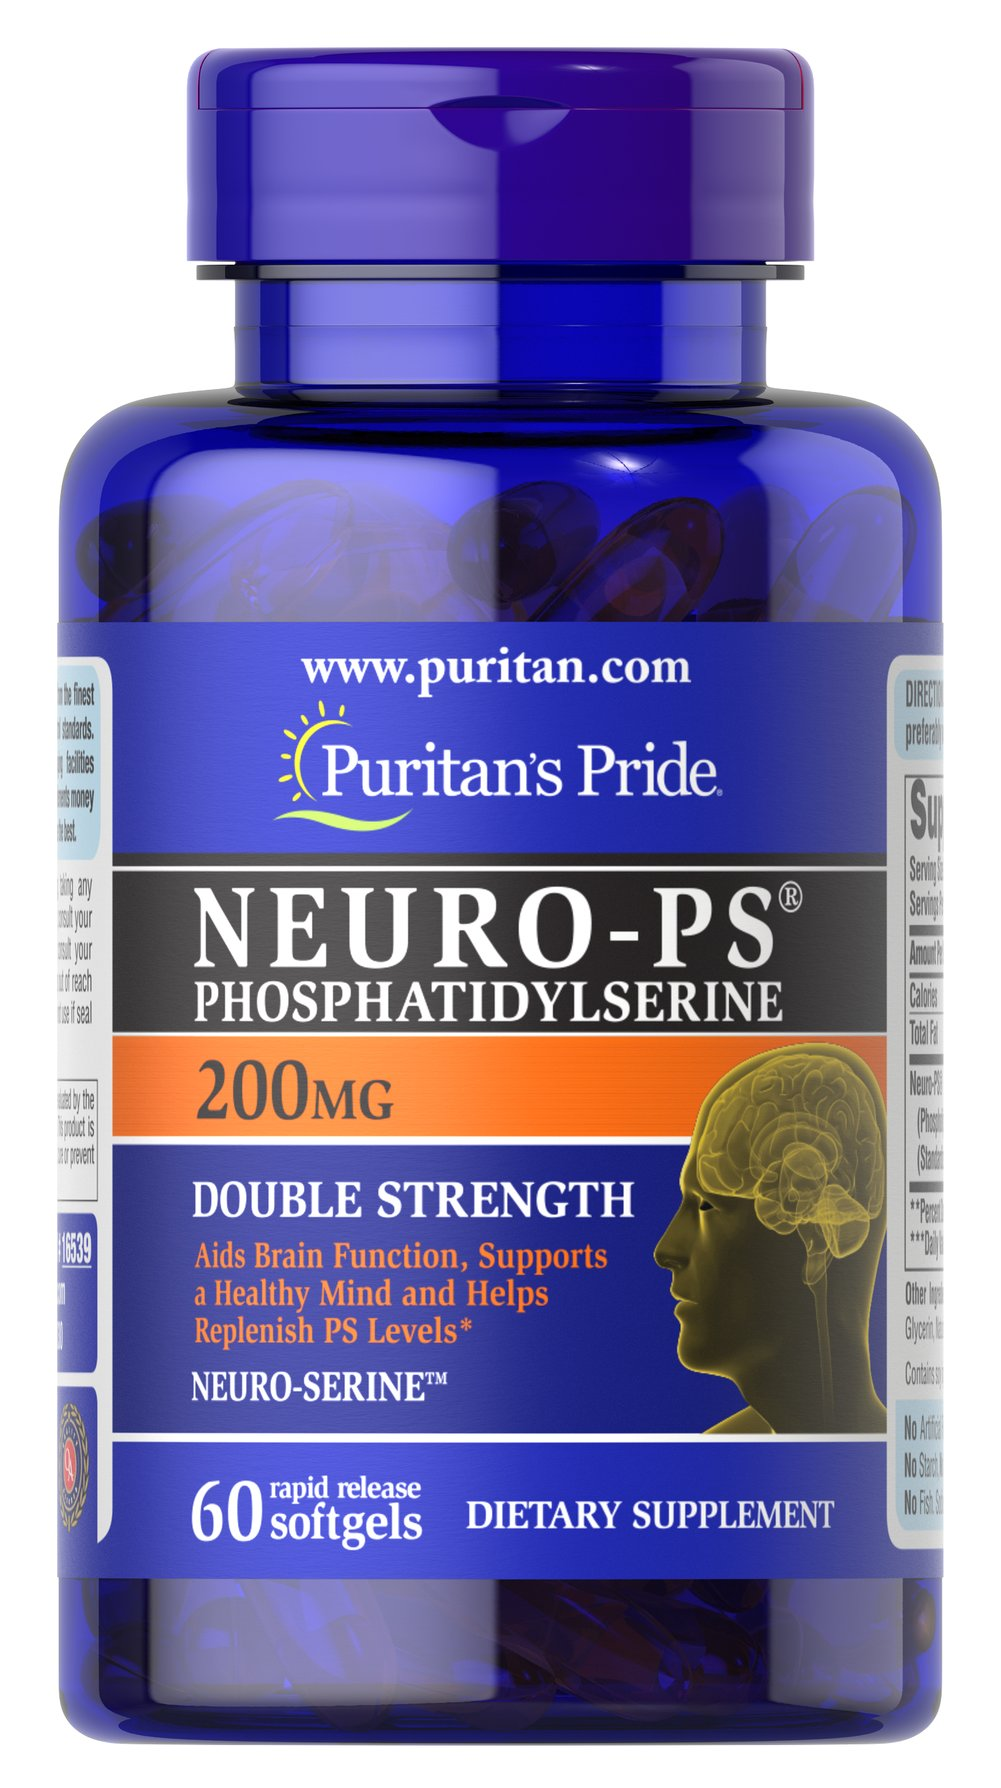 Neuro-PS (Phosphatidylserine) 200 mg <p>Phosphatidylserine (PS):</p><p>Aids Brain Function**</p><p>Supports a Healthy Mind**</p><p>Helps Replenish PS levels**</p><p>Very limited and preliminary scientific research suggests that PS may reduce the risk of cognitive dysfunction in the elderly. The FDA concludes that there is  little scientific evidence supporting this claim.</p><p>Available in 100, 200 and 300 milligram potencies<